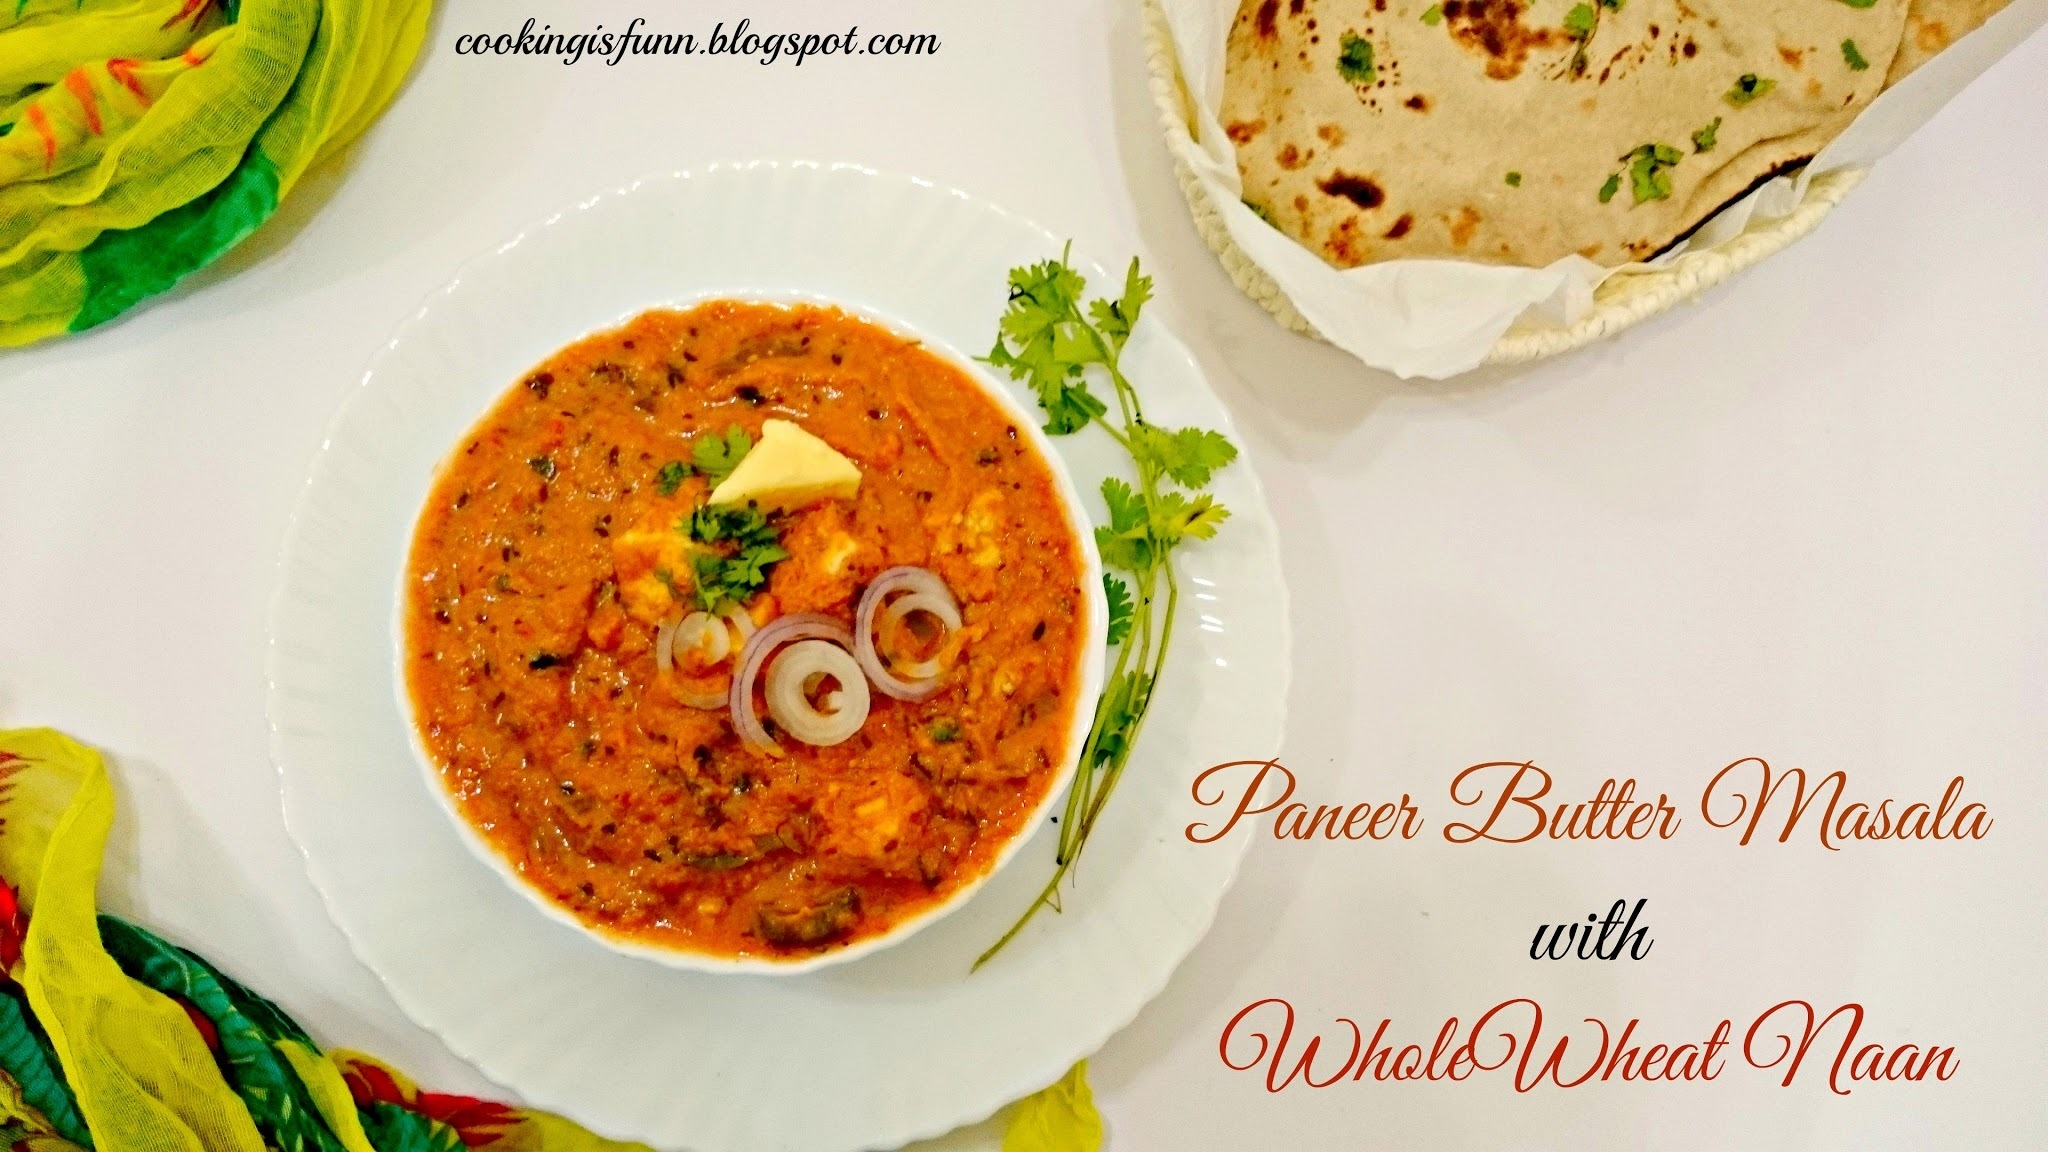 Paneer Butter Masala with Whole wheat Naan